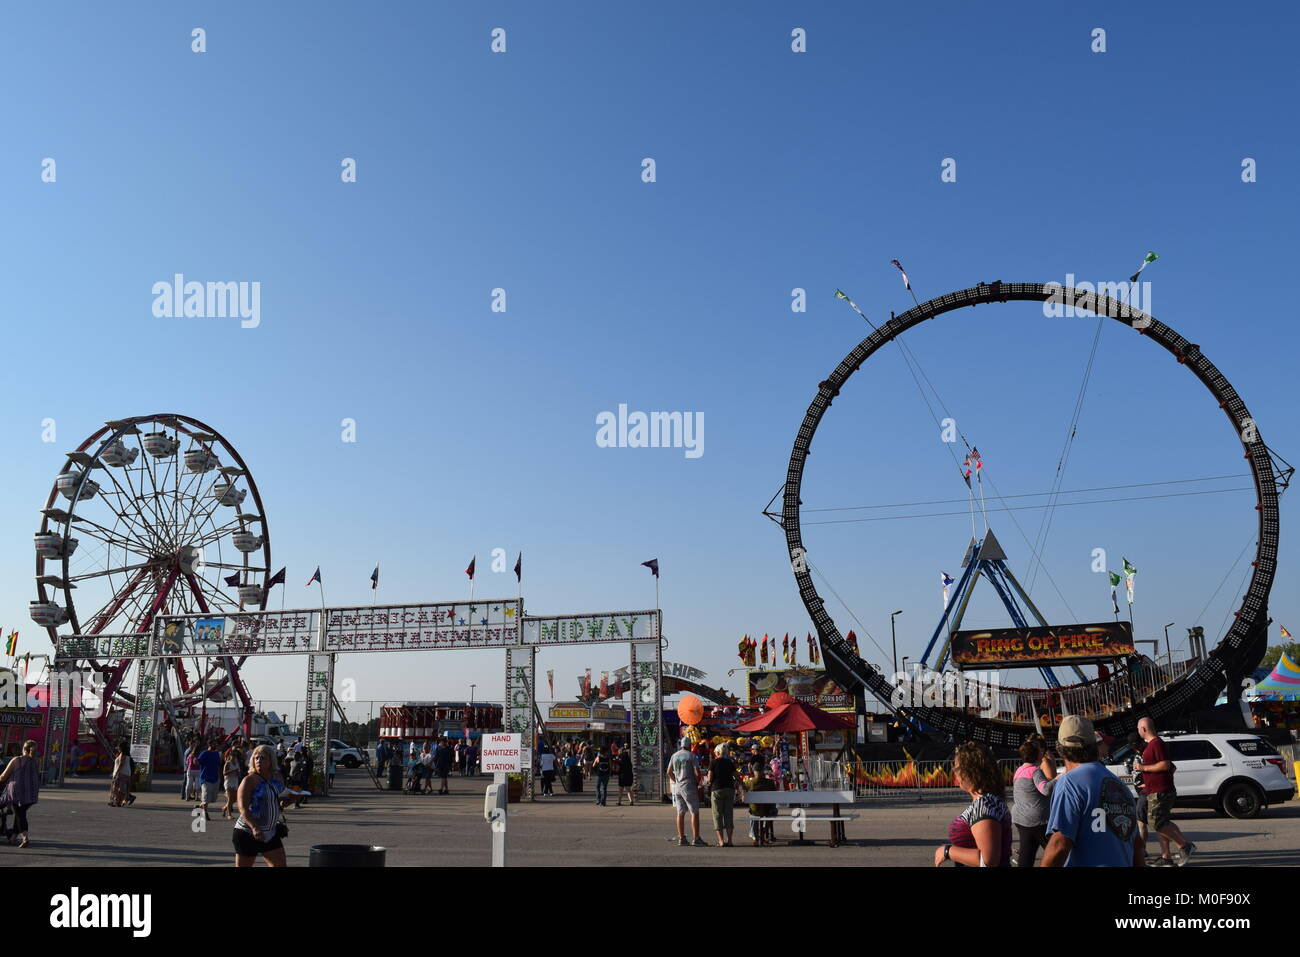 Road Trip to the Illinois State Fair - Stock Image